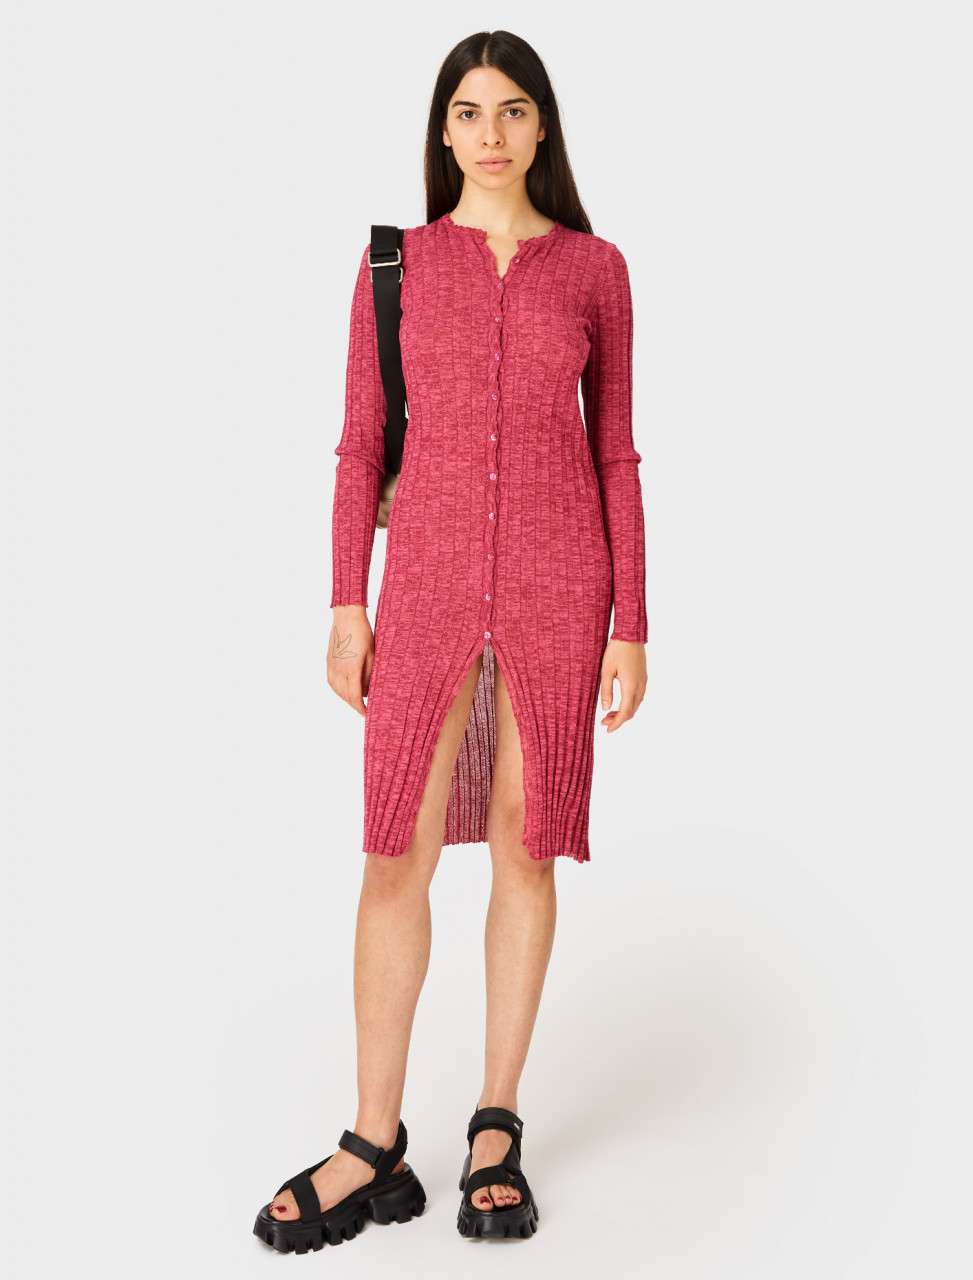 Front view of Paloma Wool Mayo Knitted Button Up Cardigan Dress in Dark Fuchsia